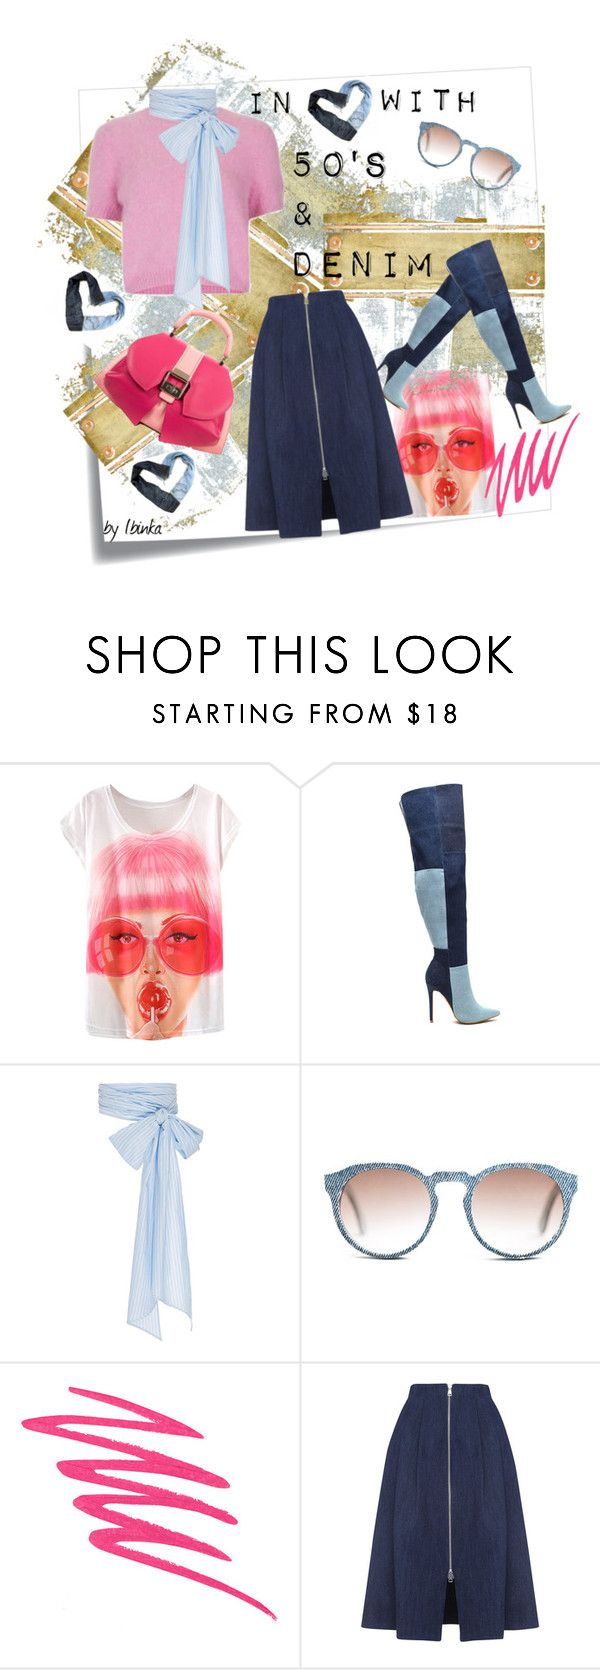 In Love with 50's & Denim by ibinka on Polyvore featuring Whistles, Anya Sushko, MDS Stripes, NARS Cosmetics, Post-It and Therapy